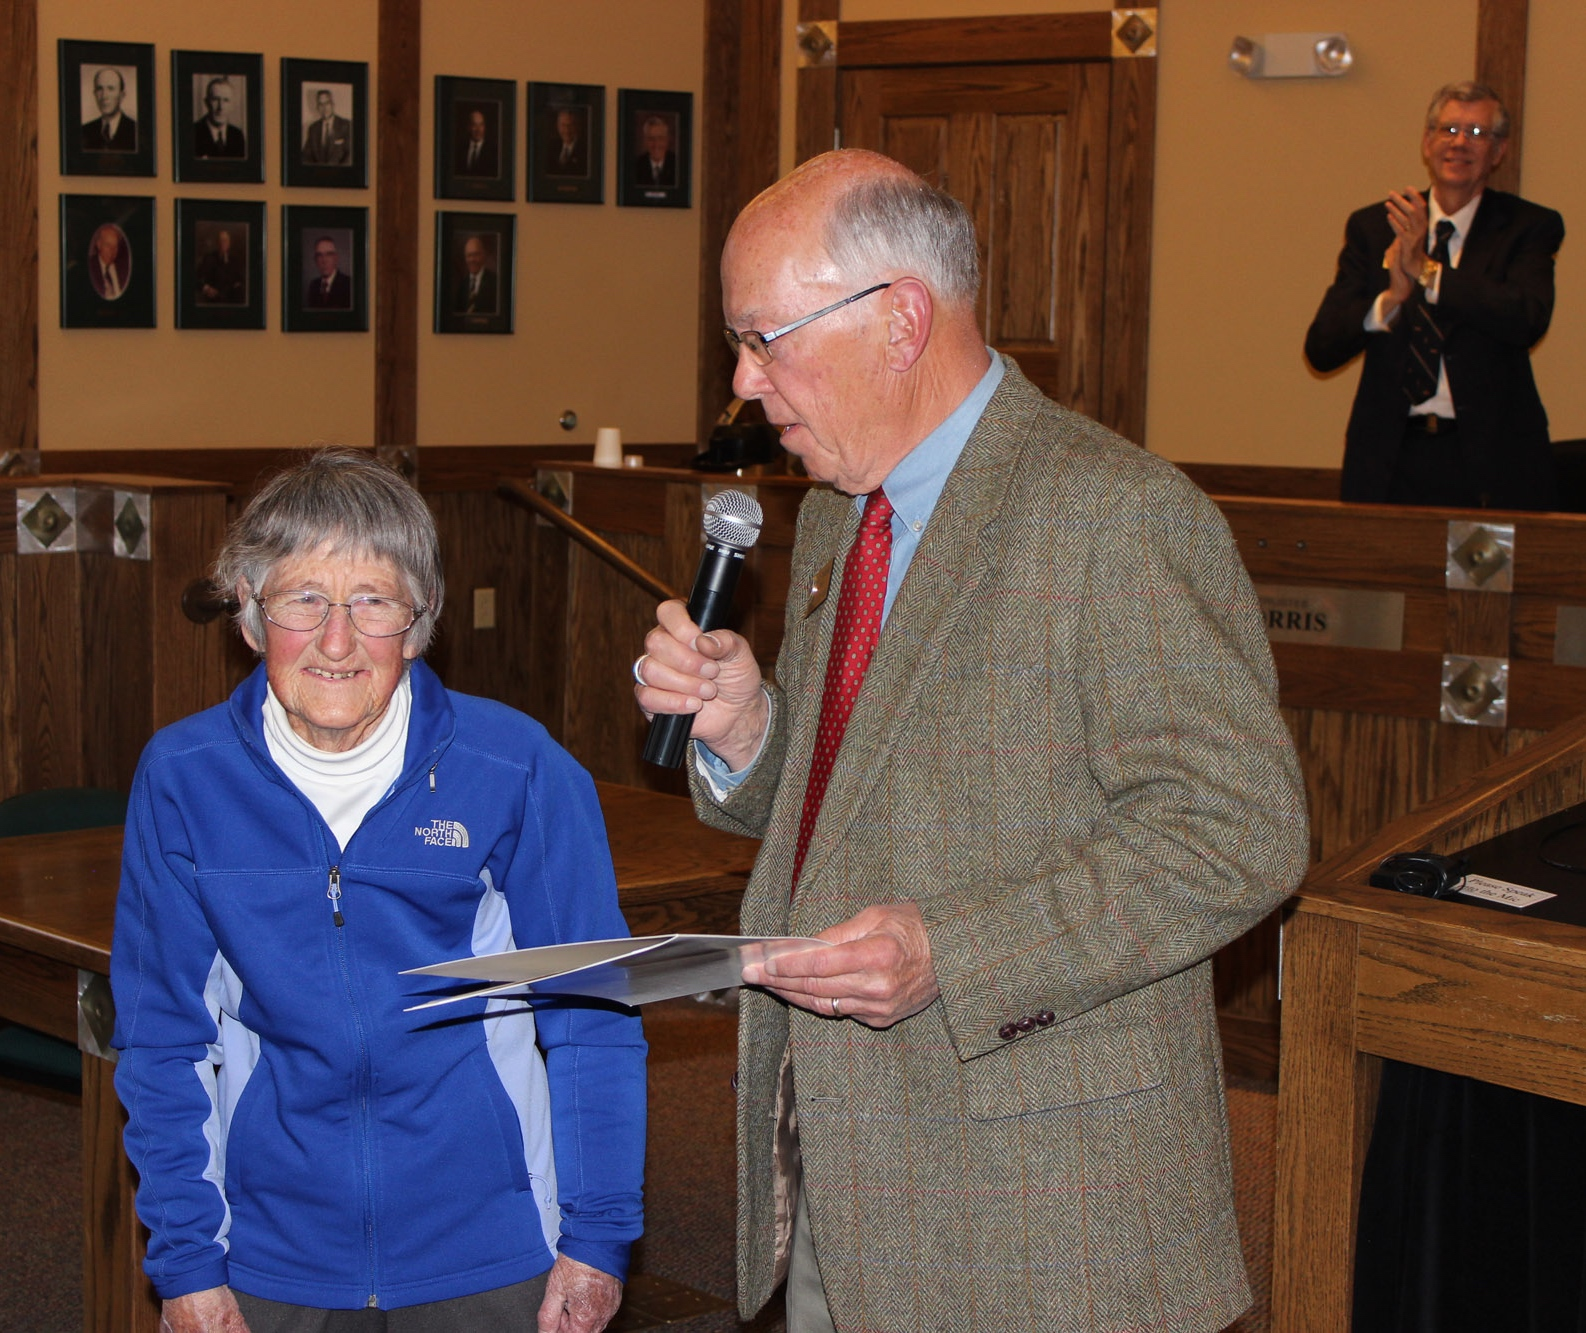 Jean Weaver received a standing ovation along with the Town of Estes Park's Resolution of Respect April 14th at Town Hall. (Town of EP photo)